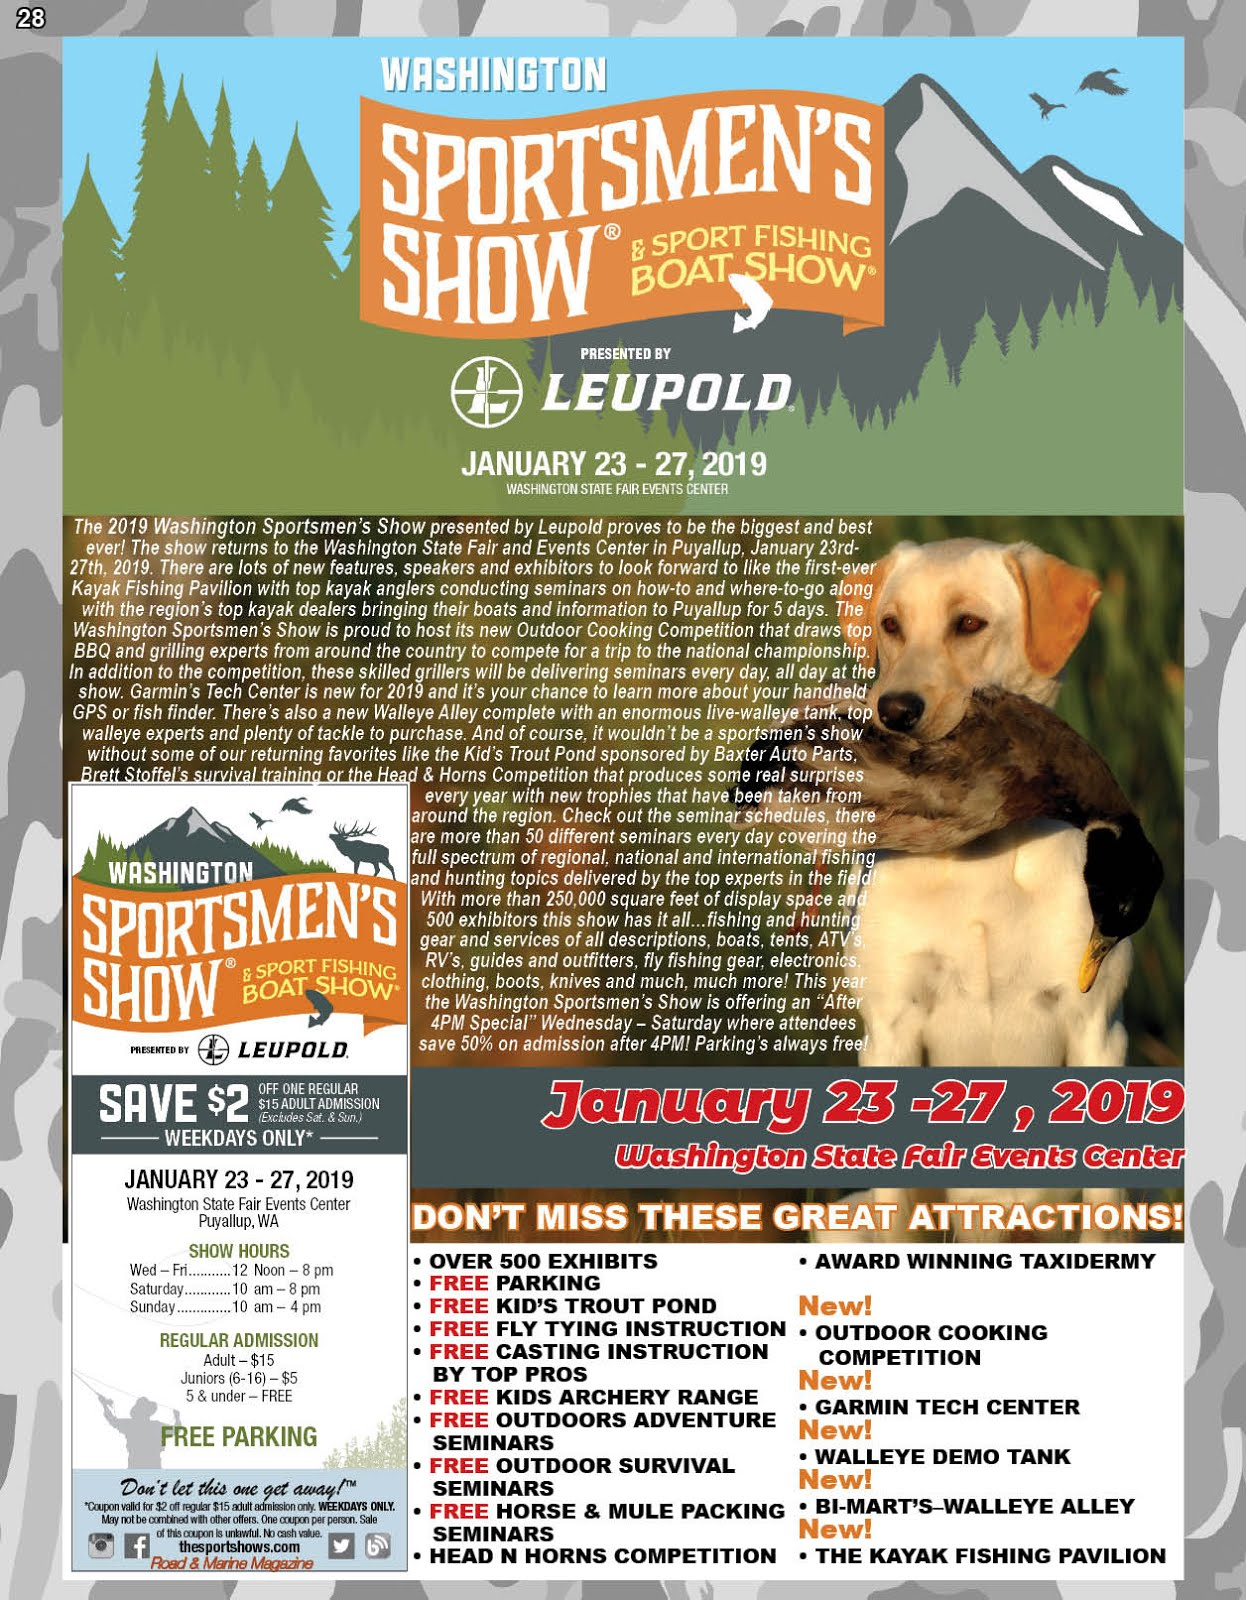 Get Your Washington Sportsmen's Show & Sport Fishing  Boat Show Discount Tickets Here!!